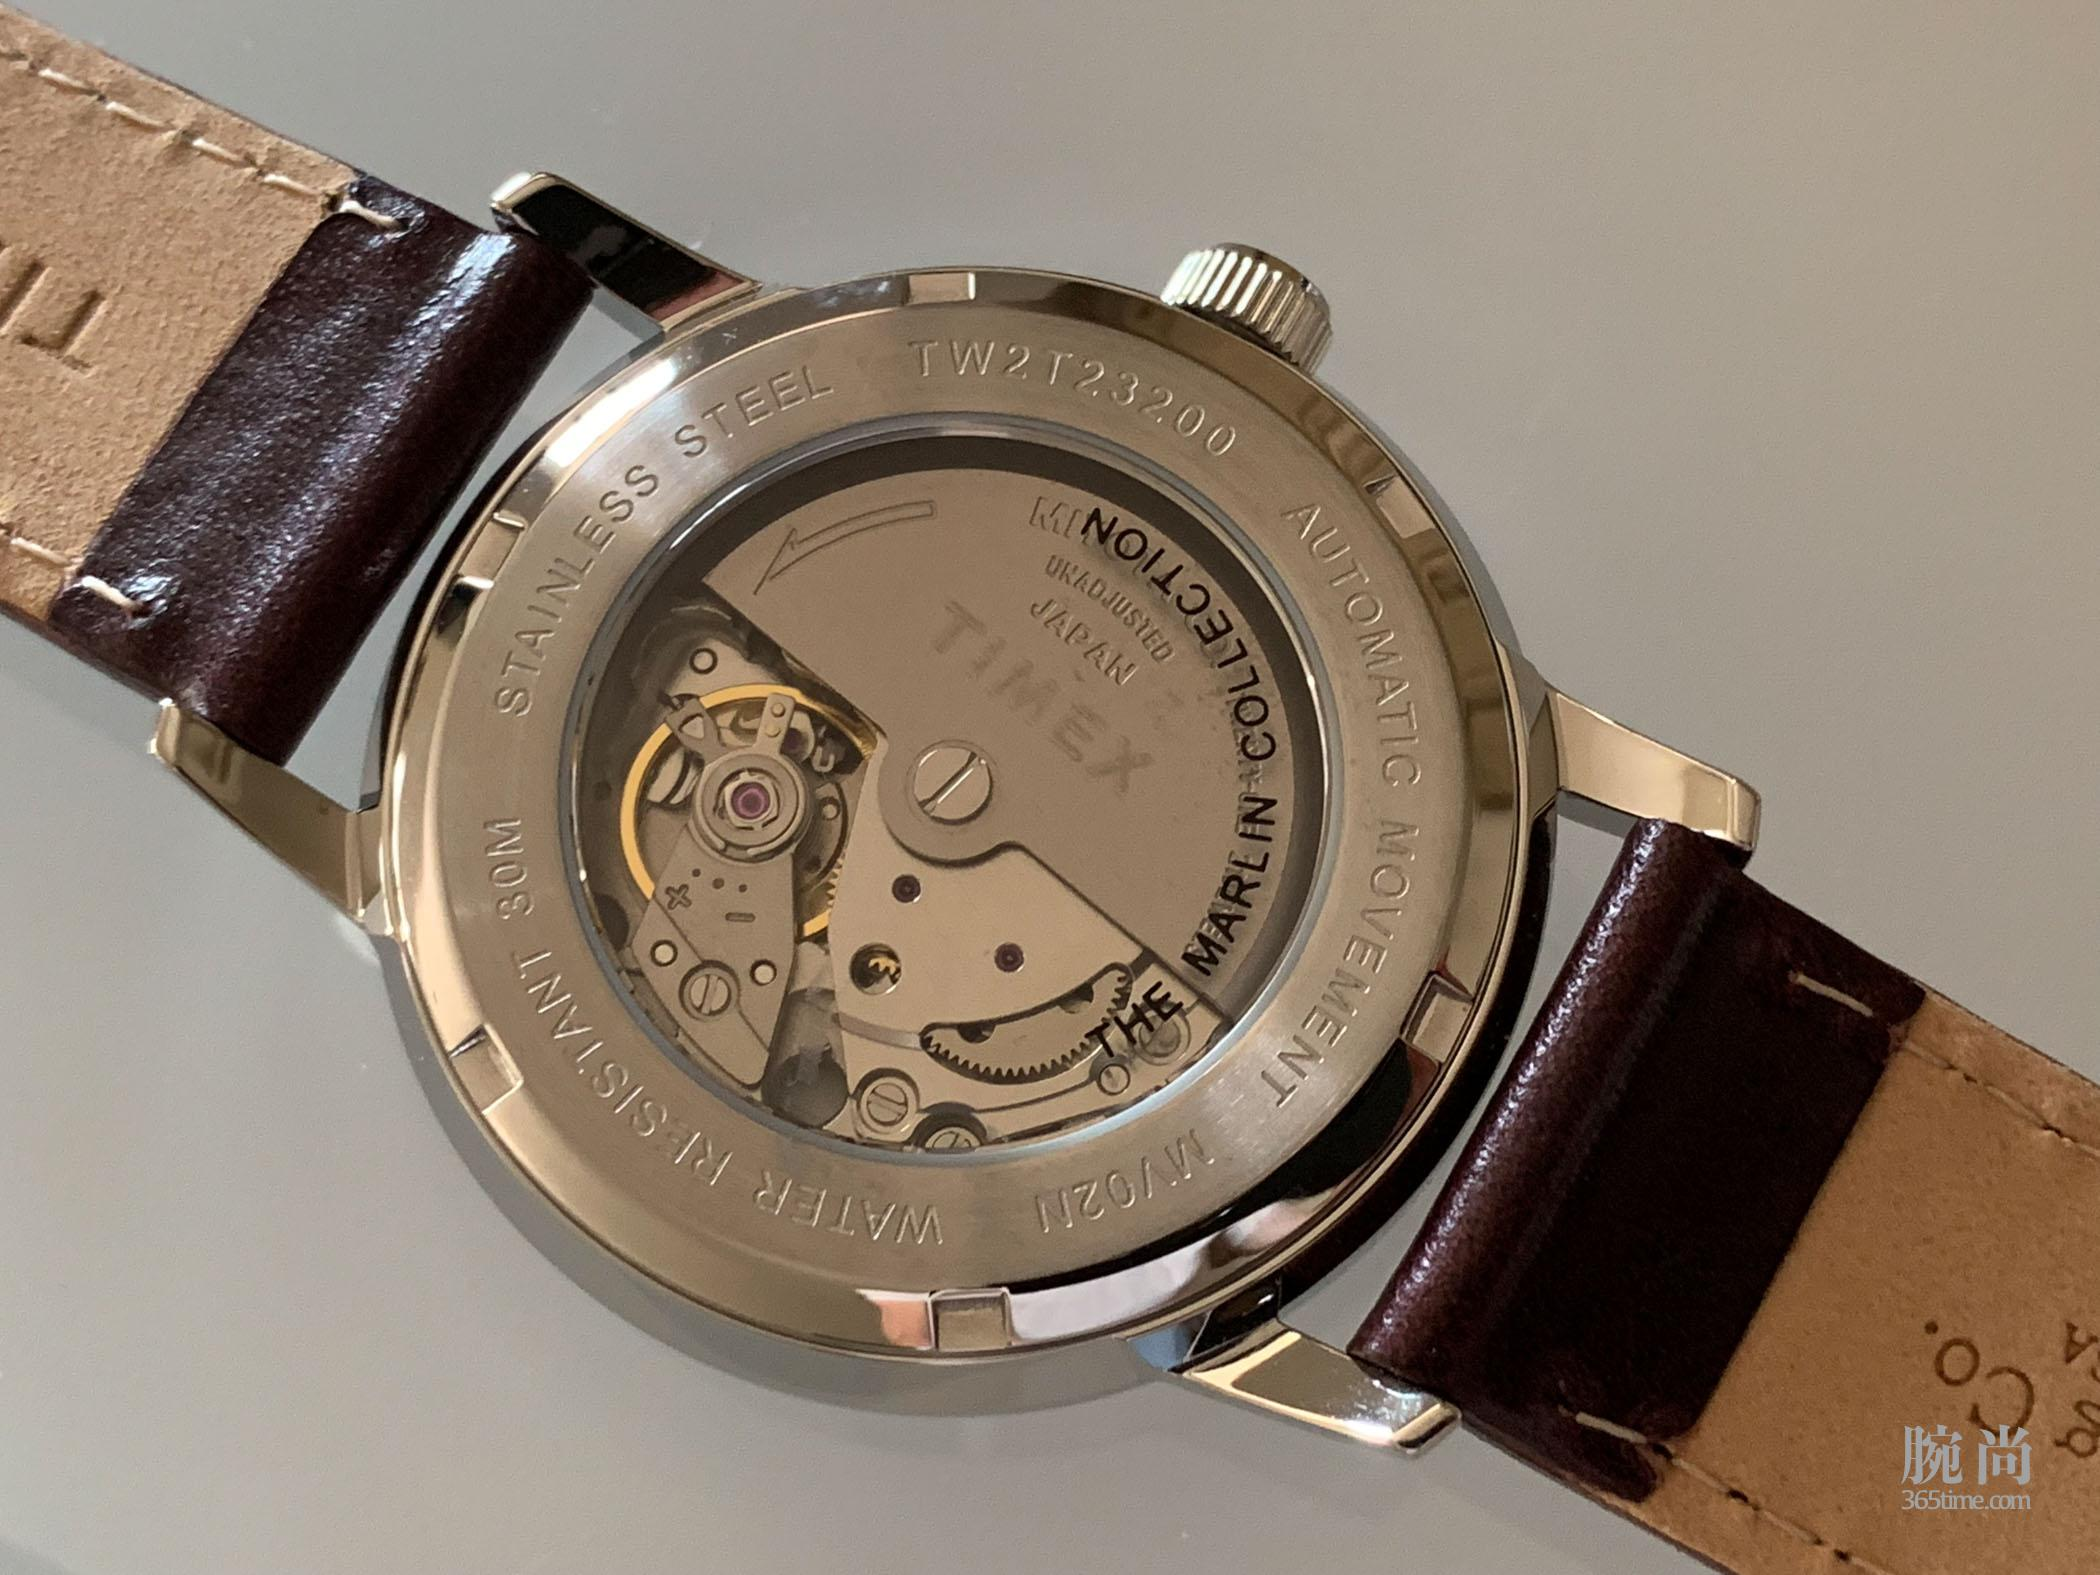 Timex-Marlin-Automatic-Review-4.jpg